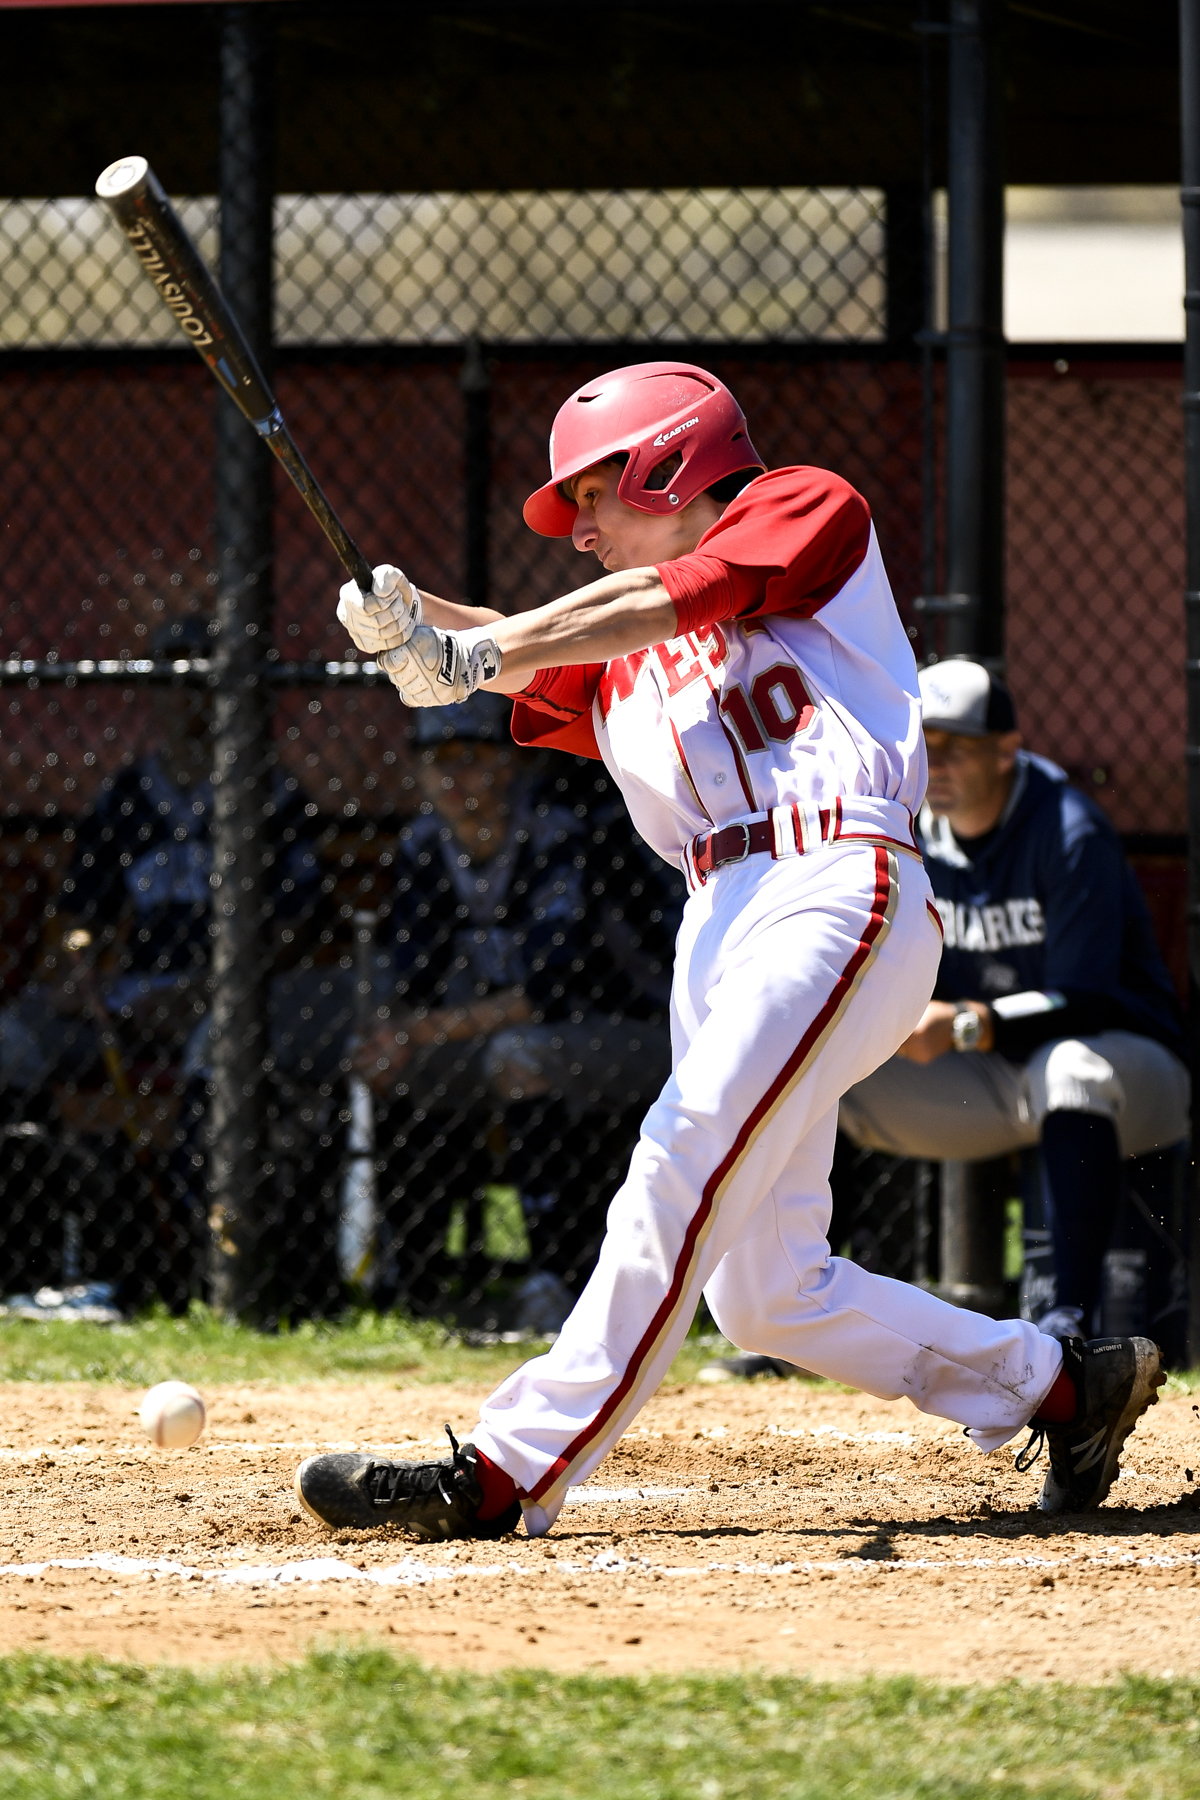 Hills West's Mike Draskin Recognized As Suffolk's Top Hitter In Baseball